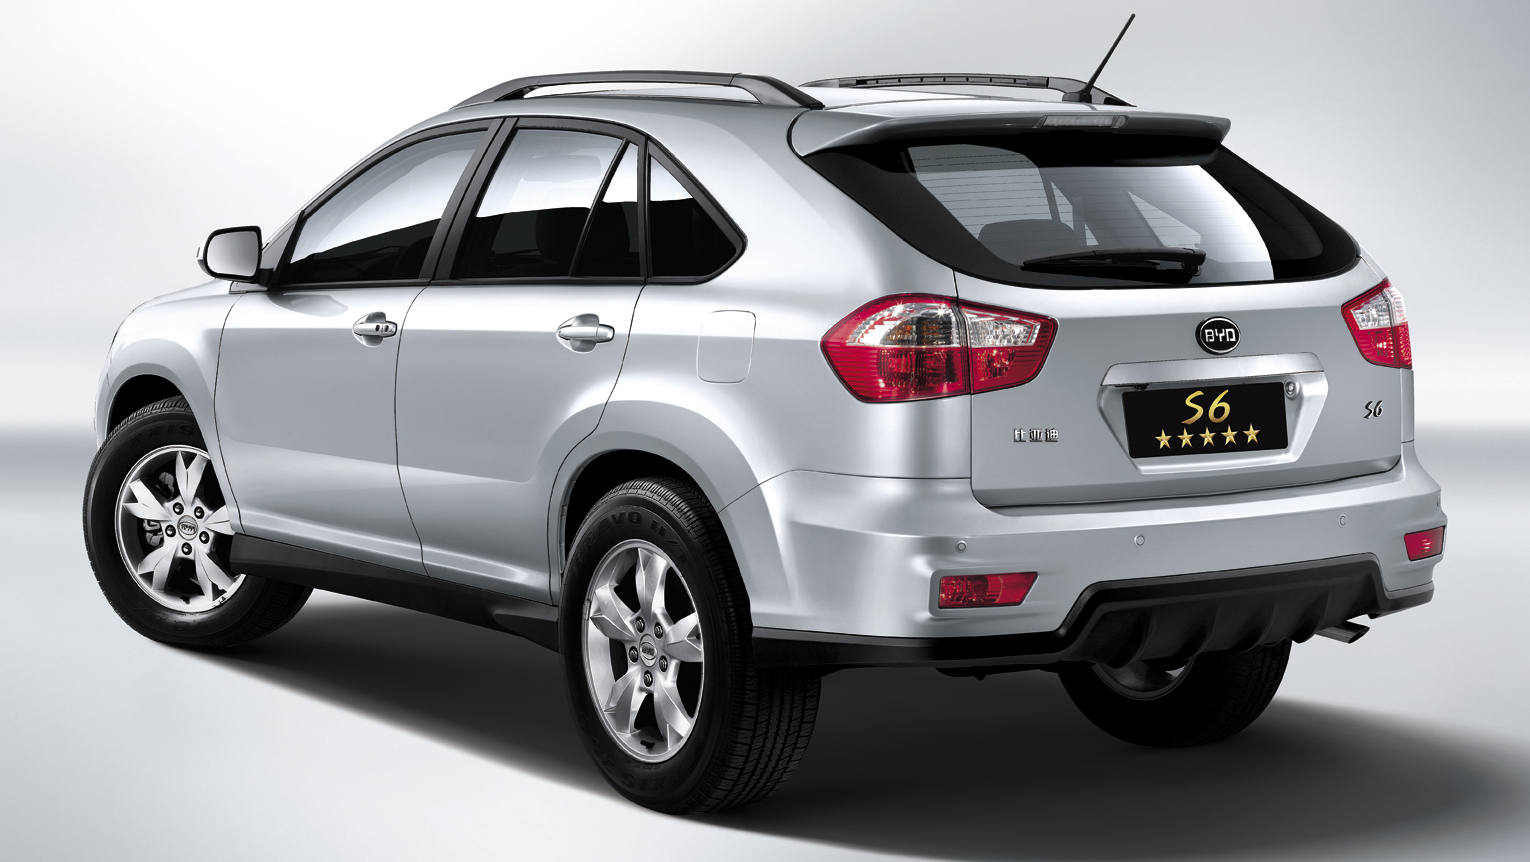 Comparison Kia Sportage Sx Suv 2015 Vs Byd S6 2015